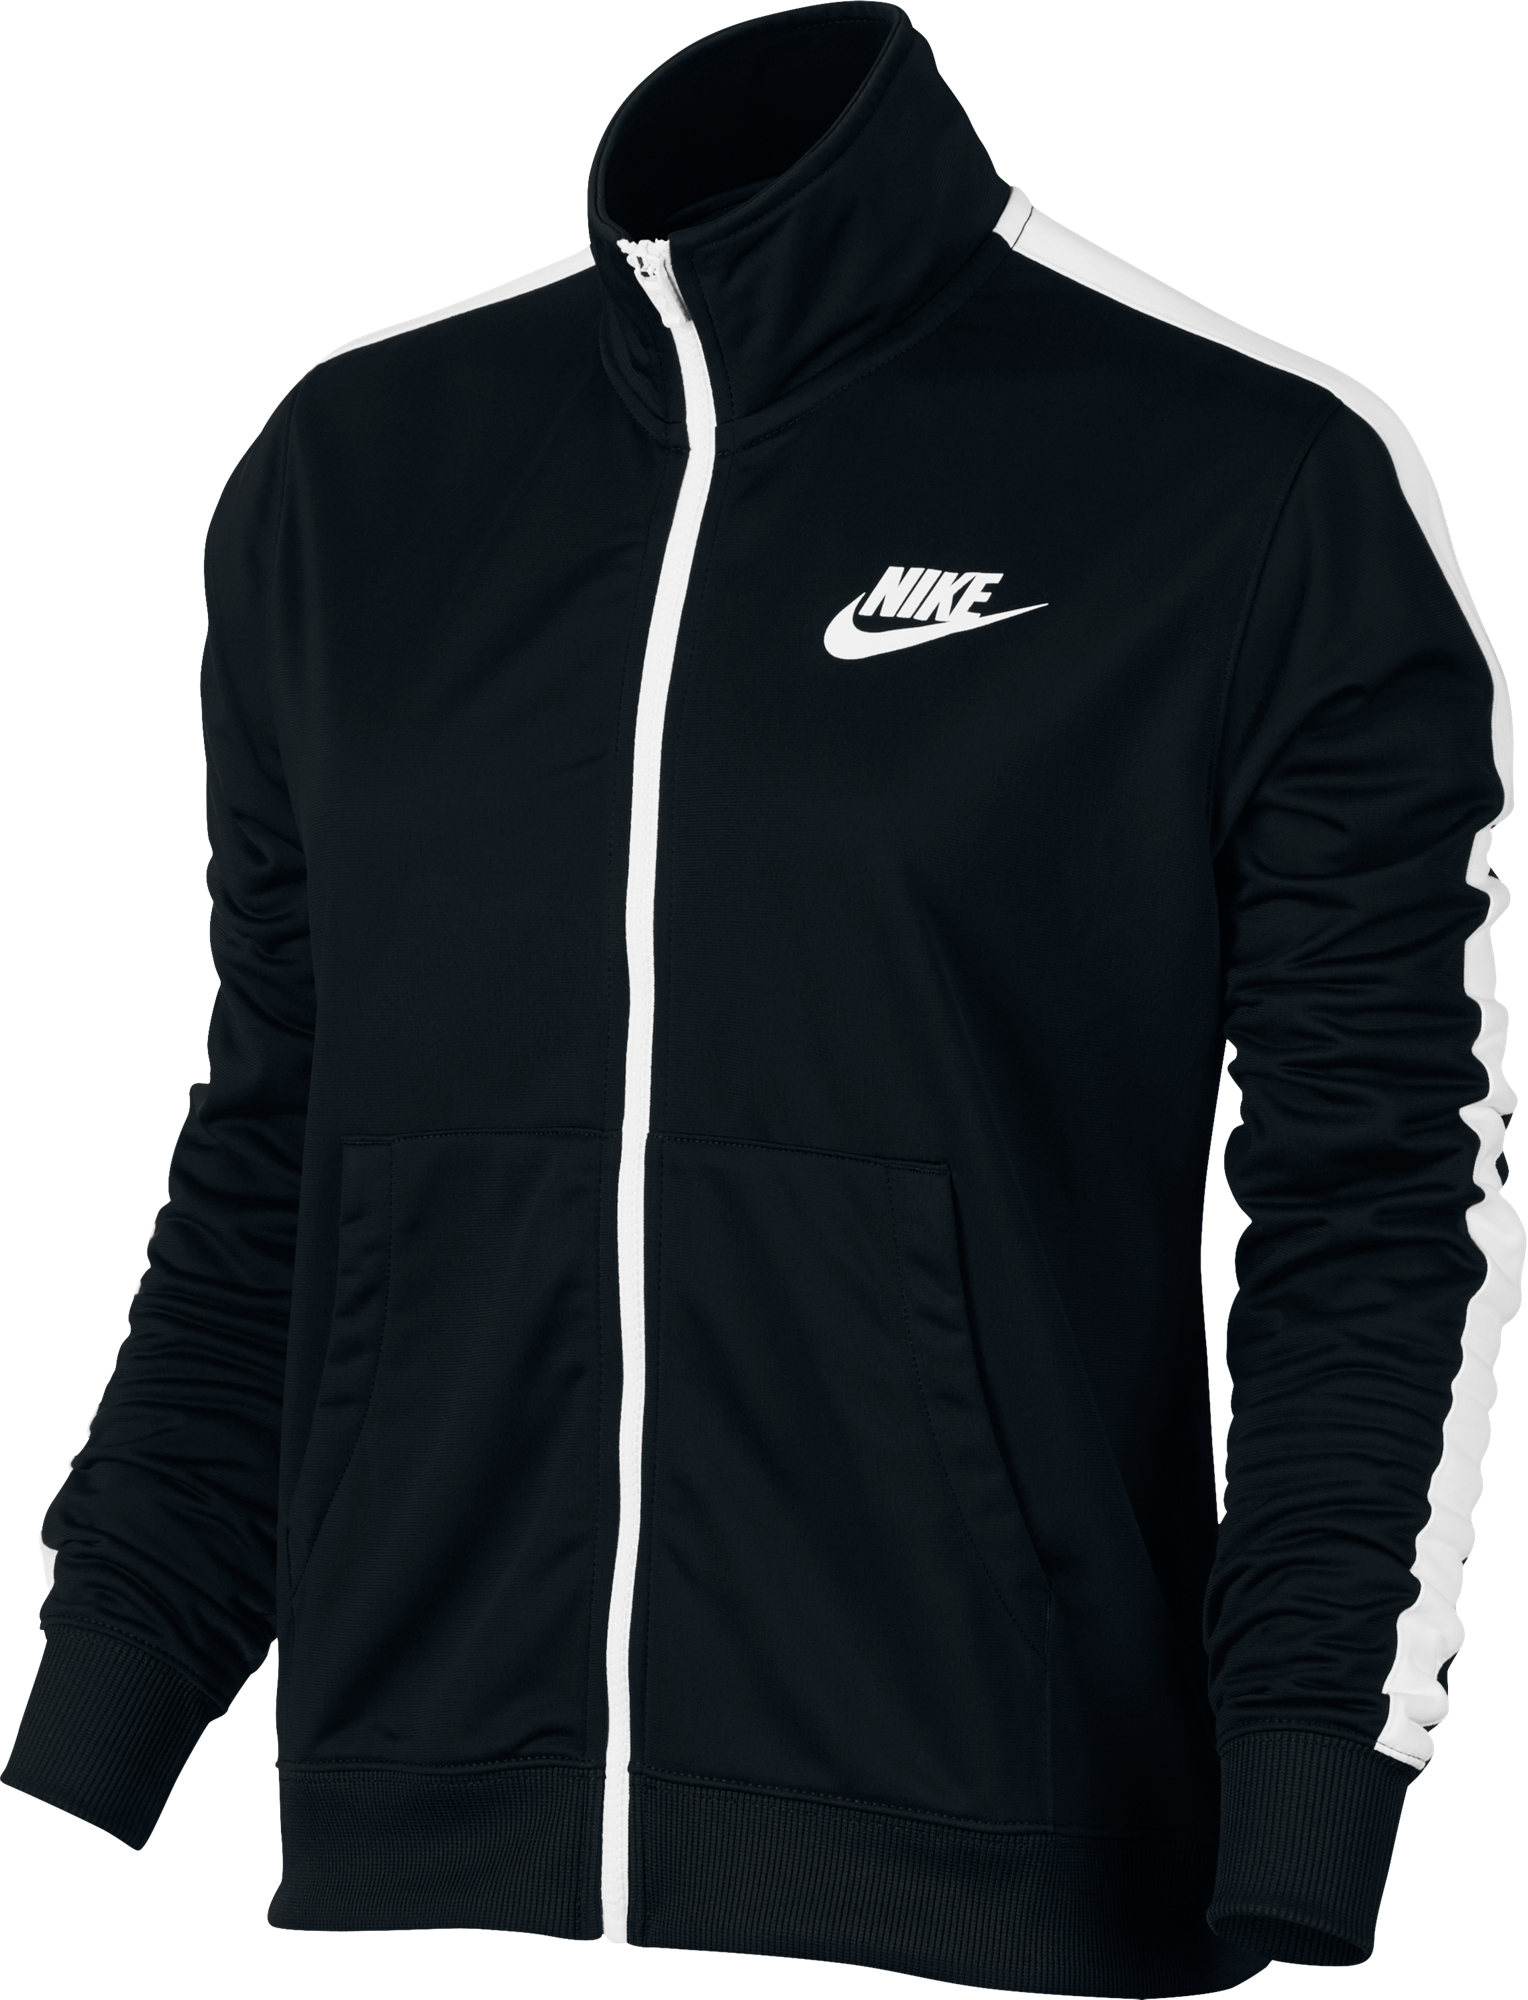 Nike Women's NSW Track Jacket